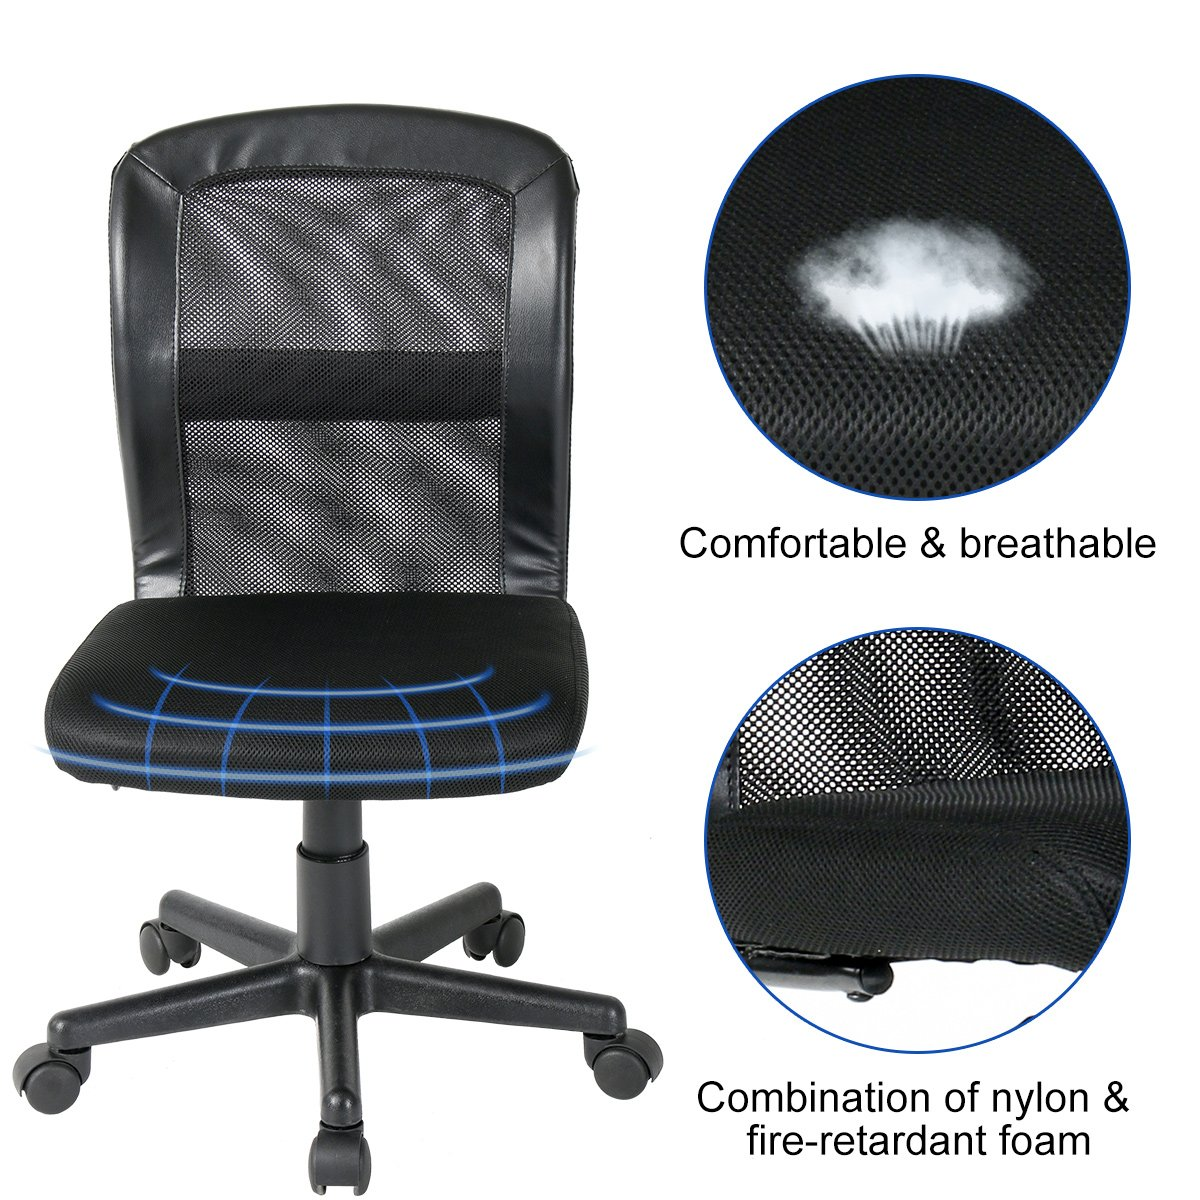 B2C2B Leather Executive Office Chair Computer Desk Chair Ergonomic Adjustable Racing Chair Task Swivel Chair Headrest and Lumbar Support Black